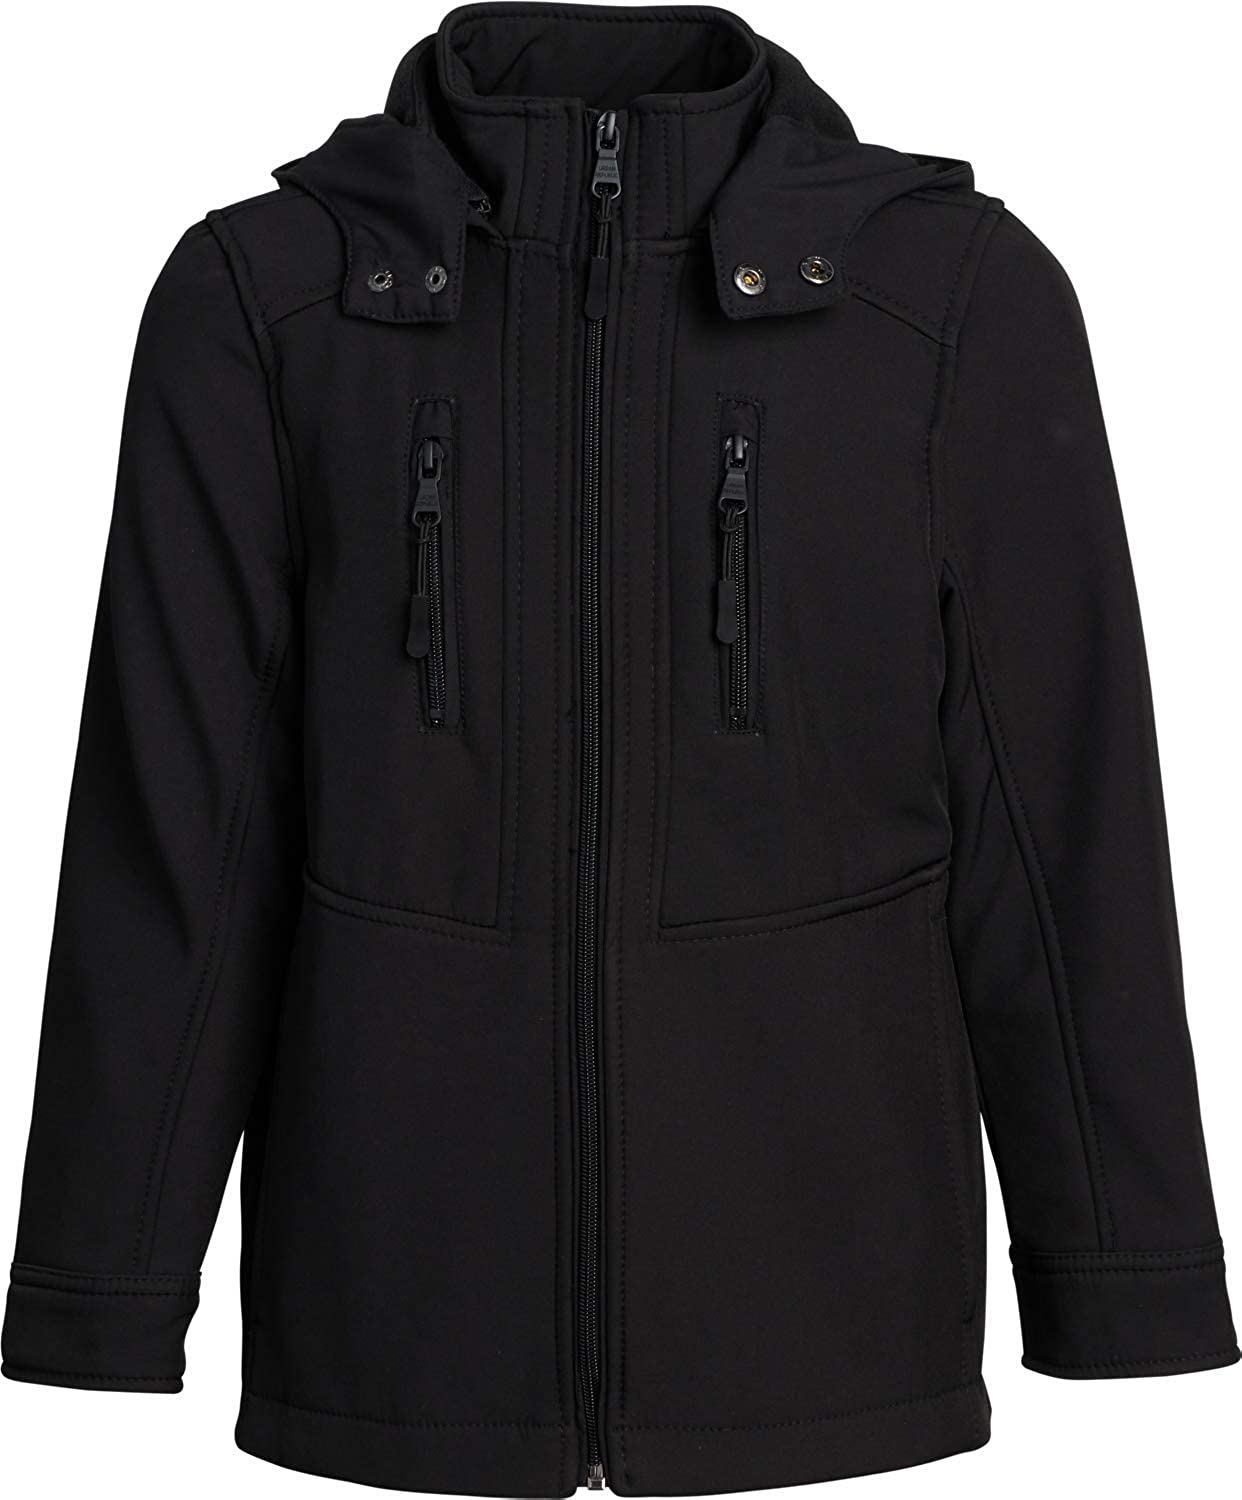 URBAN REPUBLIC Boys' Jacket Chicago Mall - Lightweight R Shell with Coat Soft safety